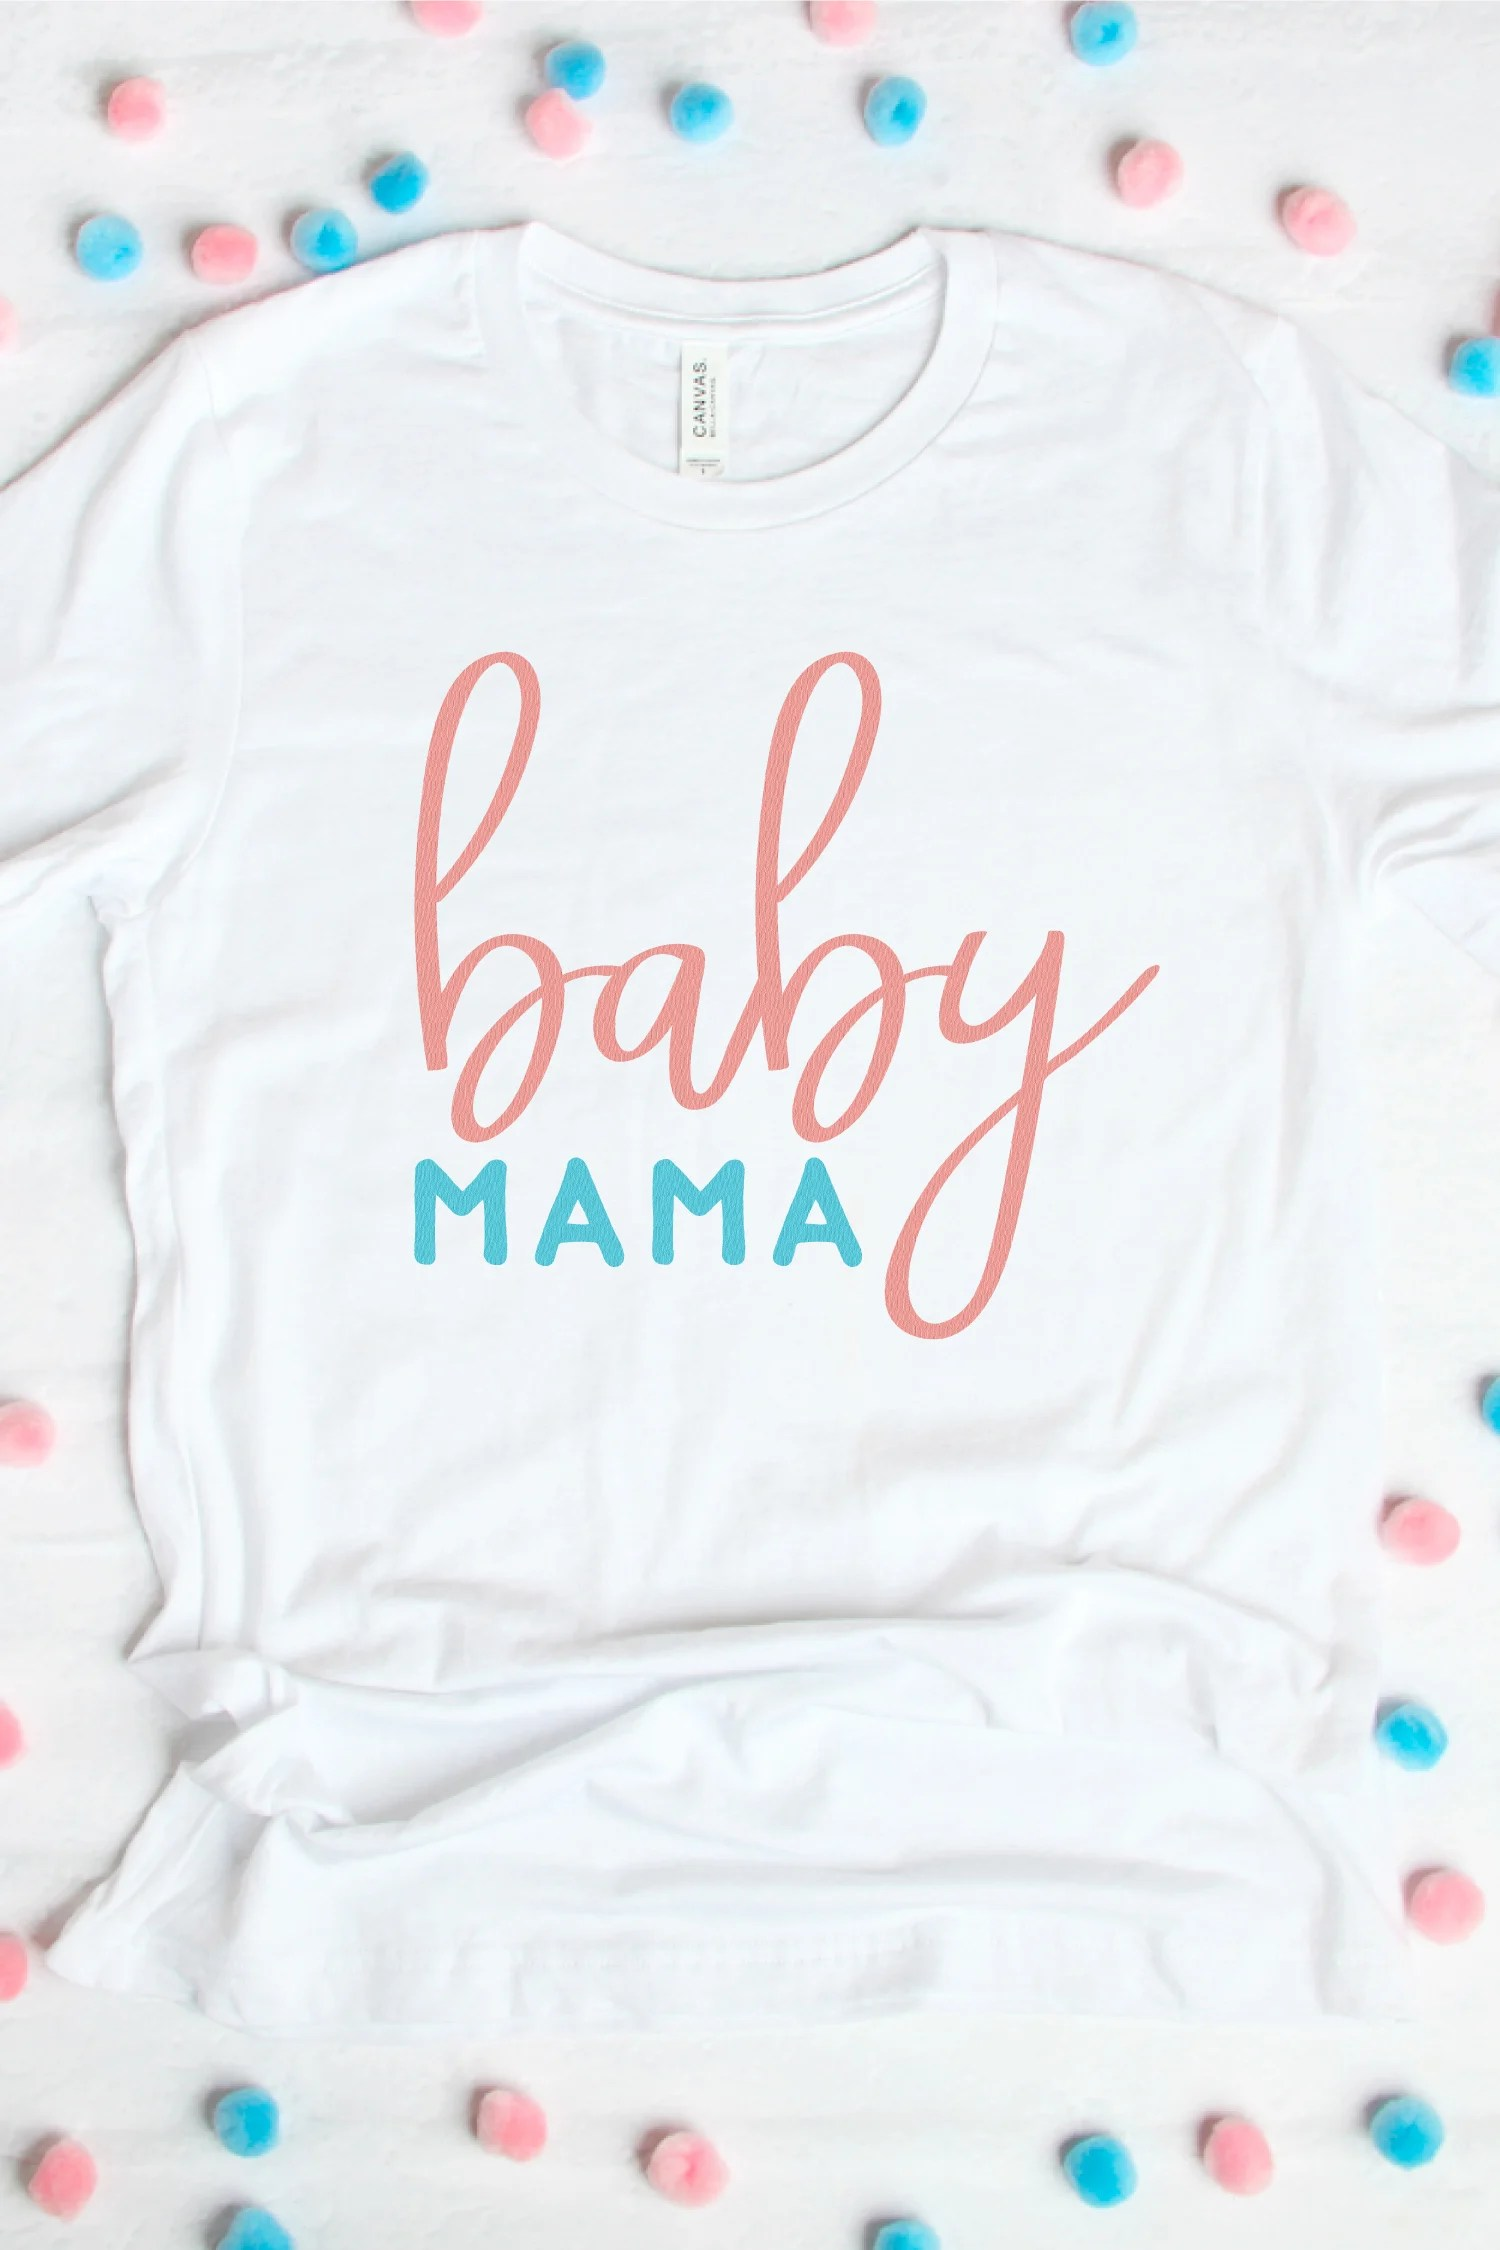 Are you sporting that baby bump? Or know someone who is? Announce it and wear it proud with this adorably sweet Flash Freebie Pregnancy SVG File Bundle